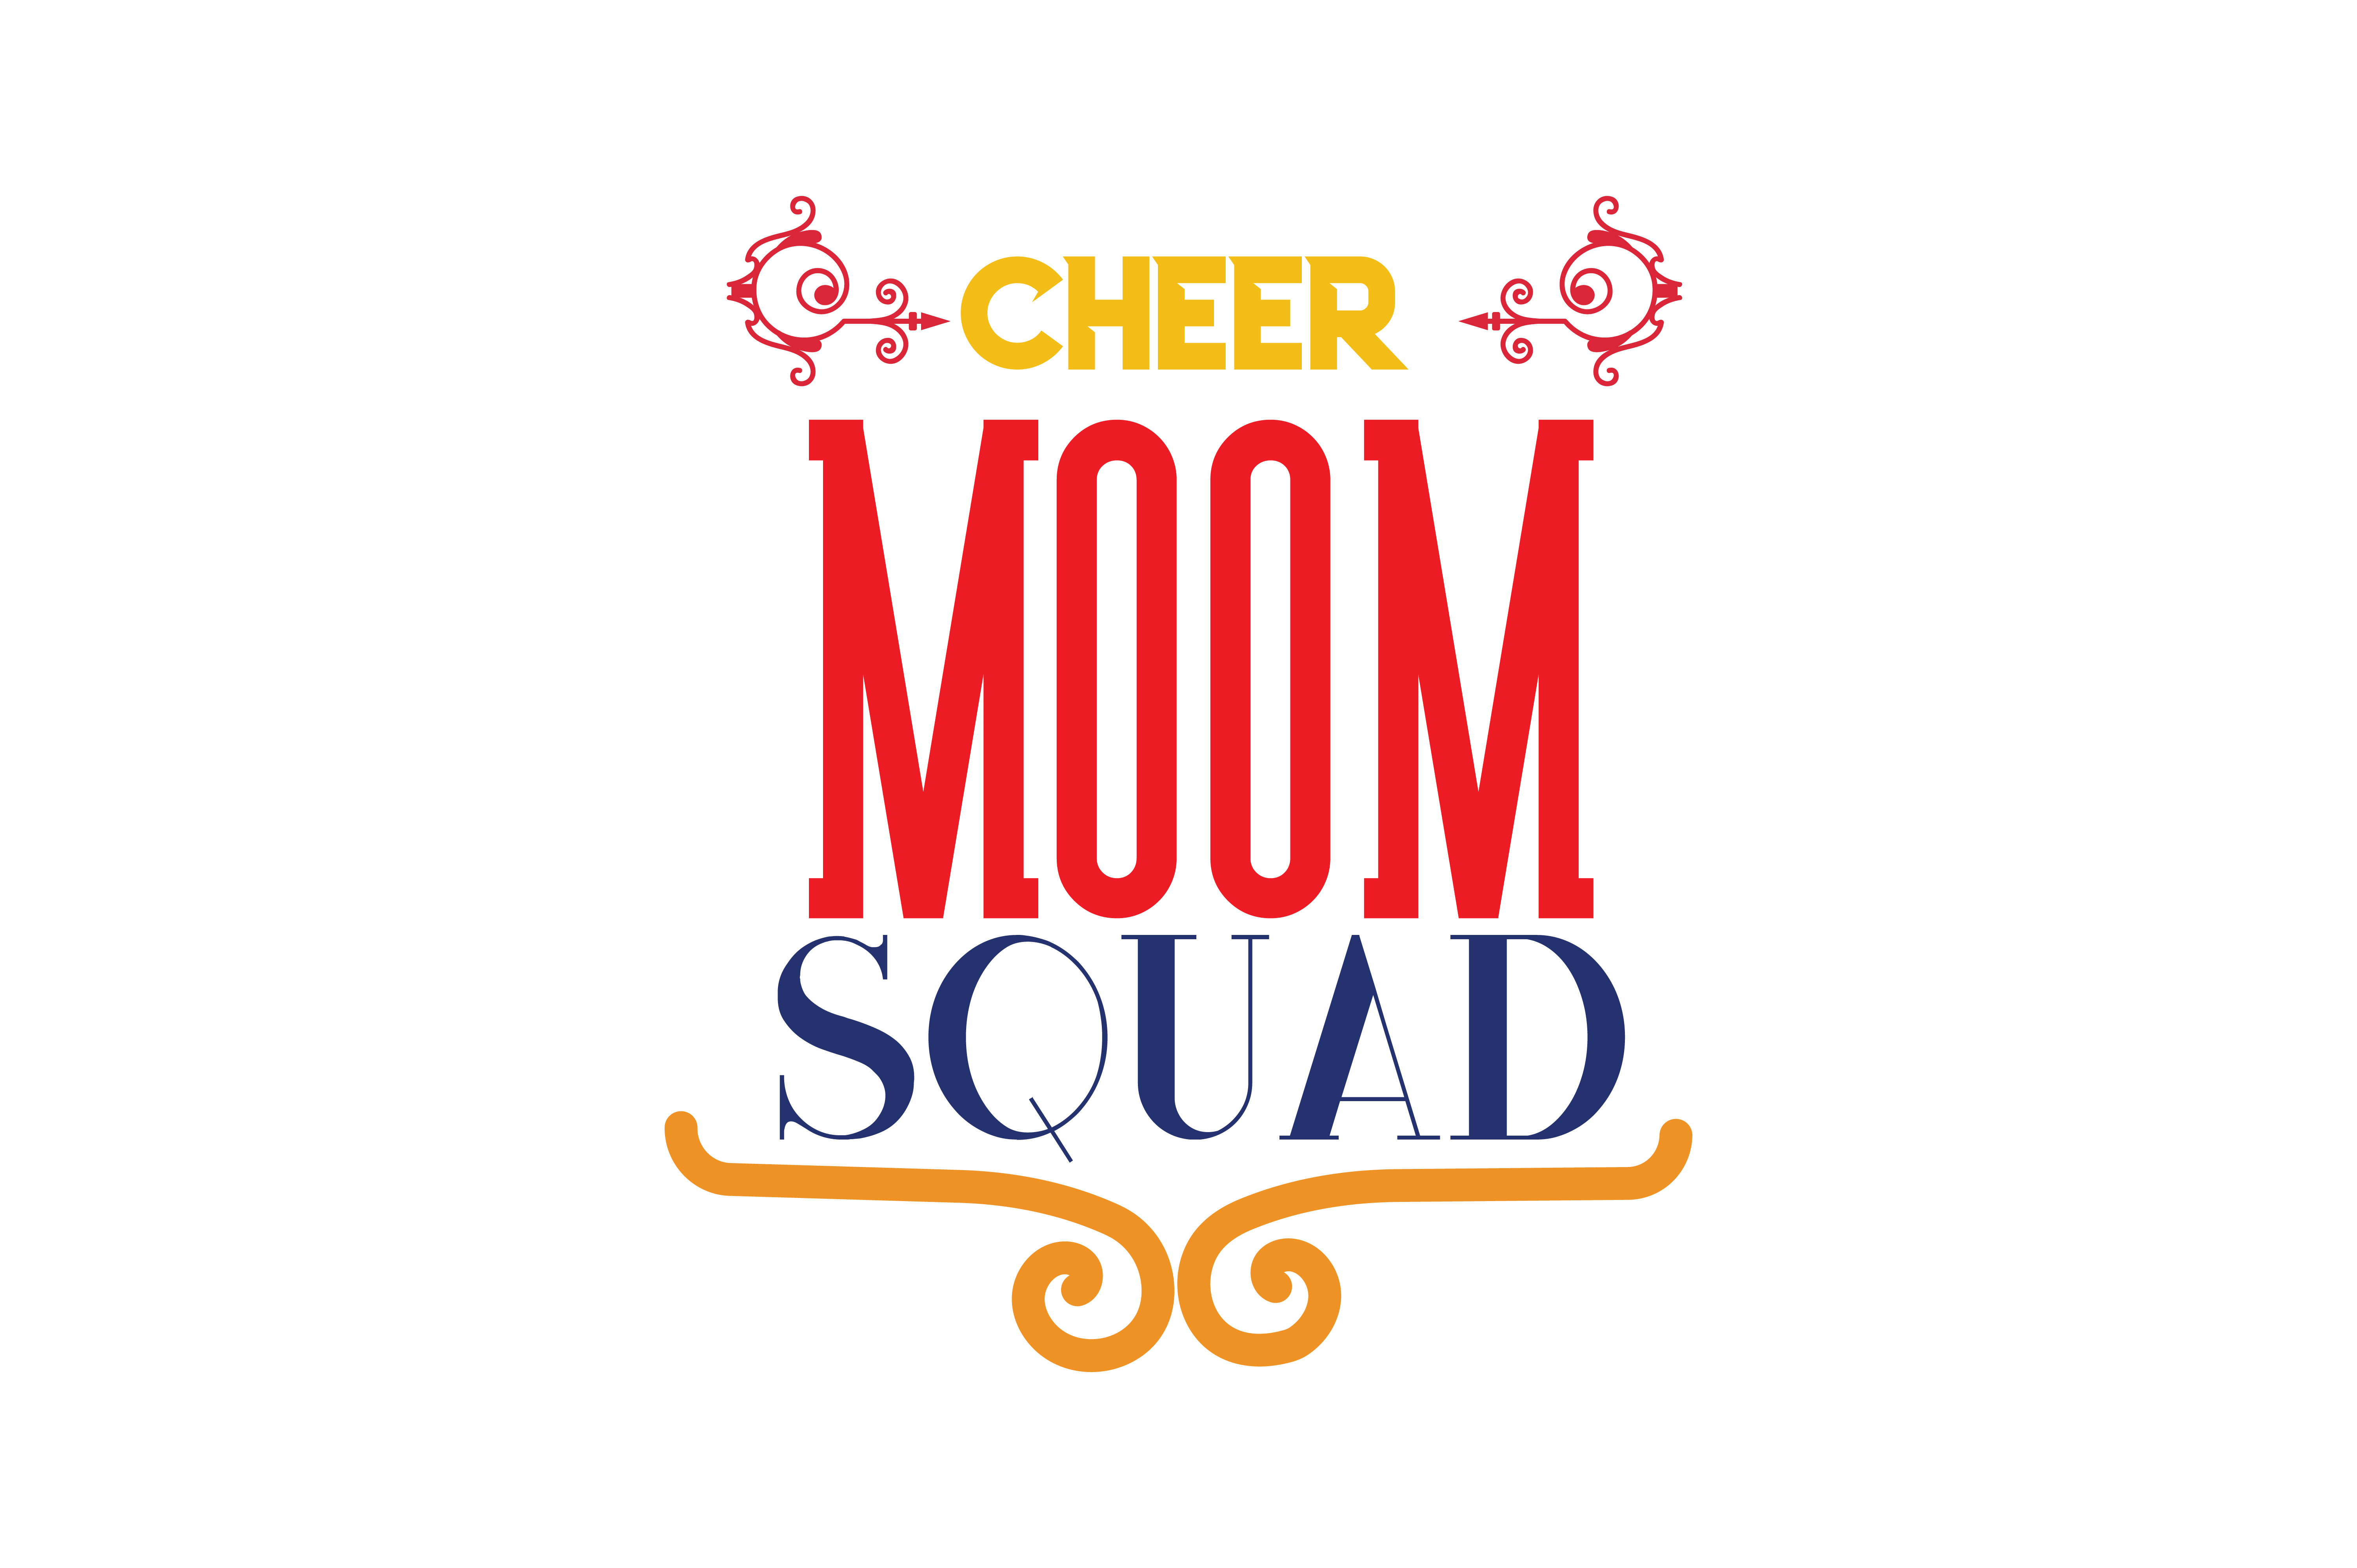 Download Free Cheer Mom Squad Quote Svg Cut Graphic By Thelucky Creative Fabrica for Cricut Explore, Silhouette and other cutting machines.